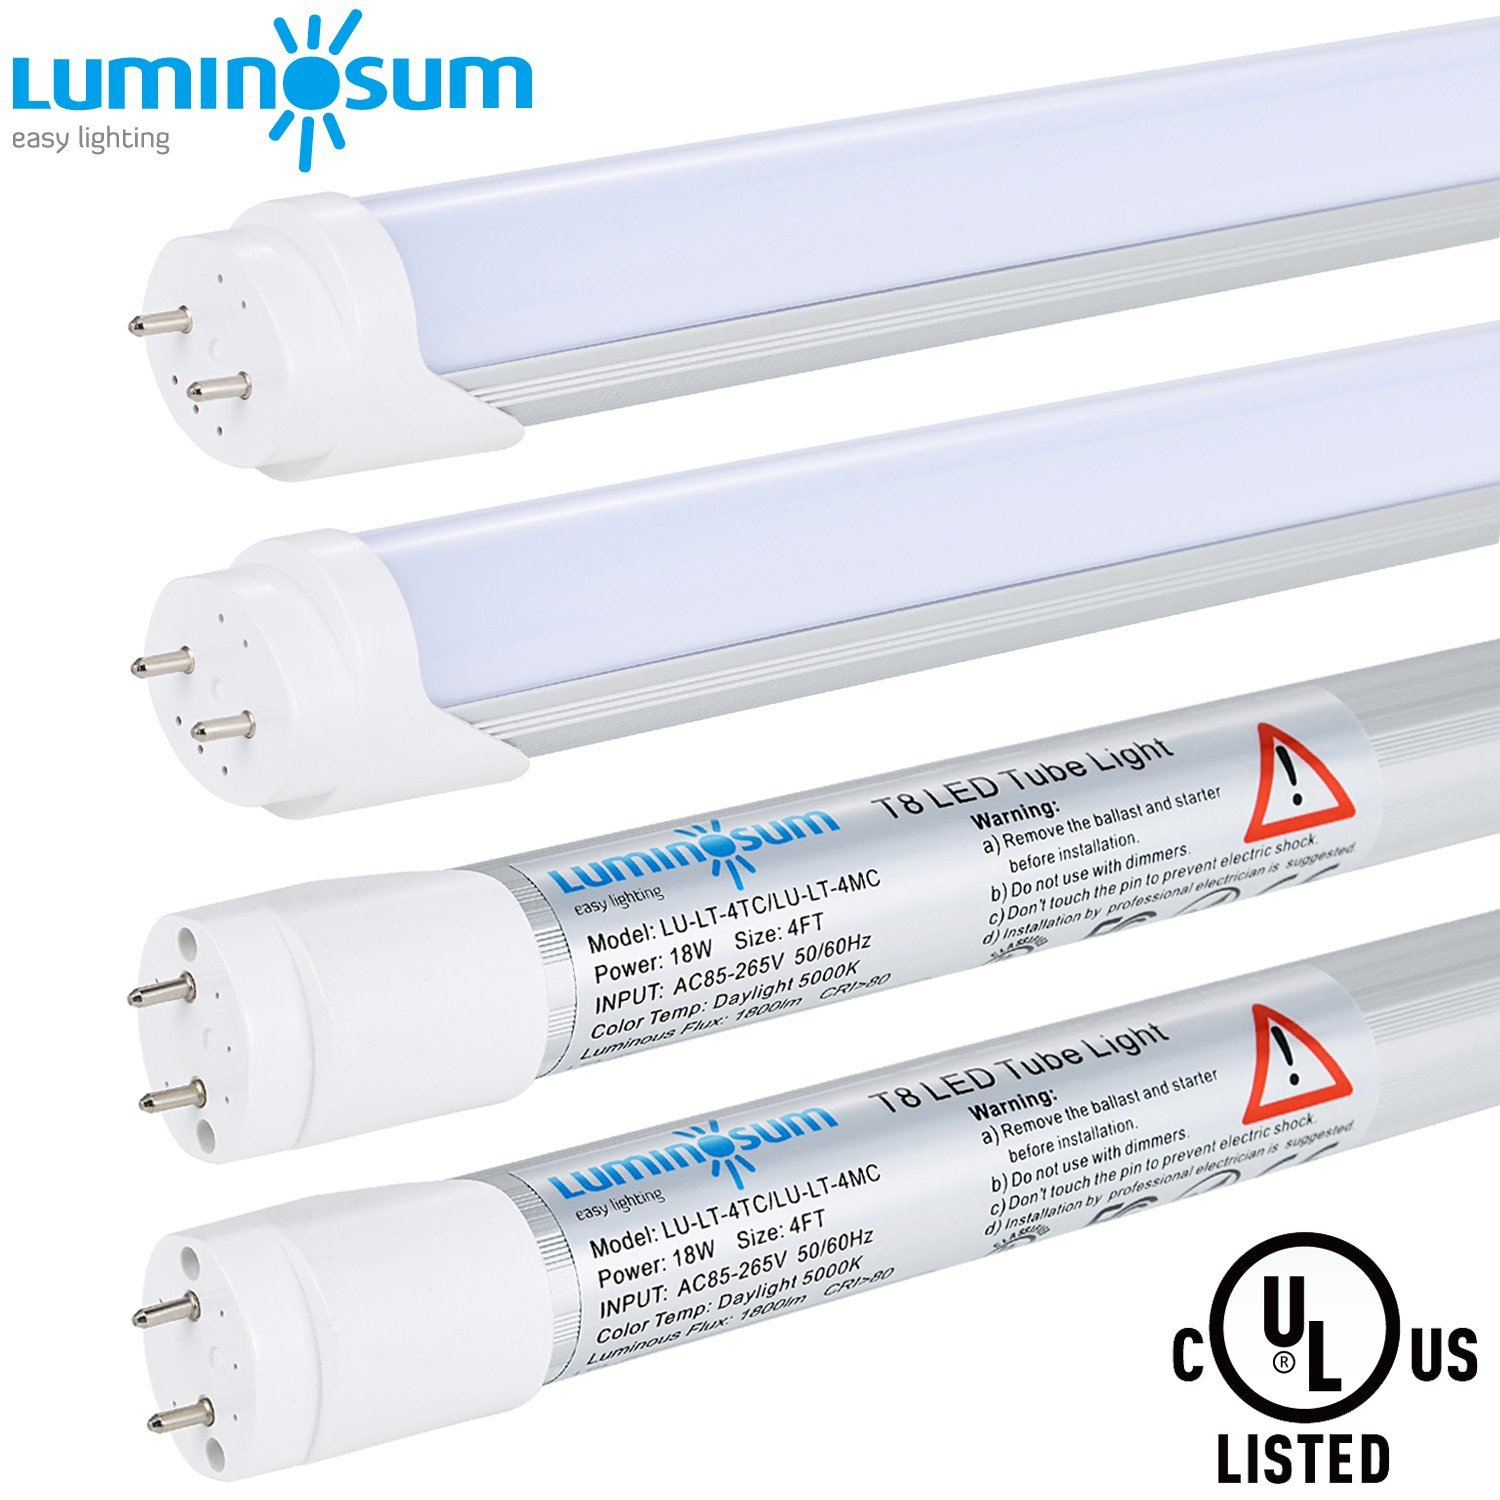 LUMINOSUM T8 LED Tube Light 4ft 18W, 36W Equivalent, Single-Ended Powered, G13 Base, Frosted Cover, Daylight 5000K, 4-Pack